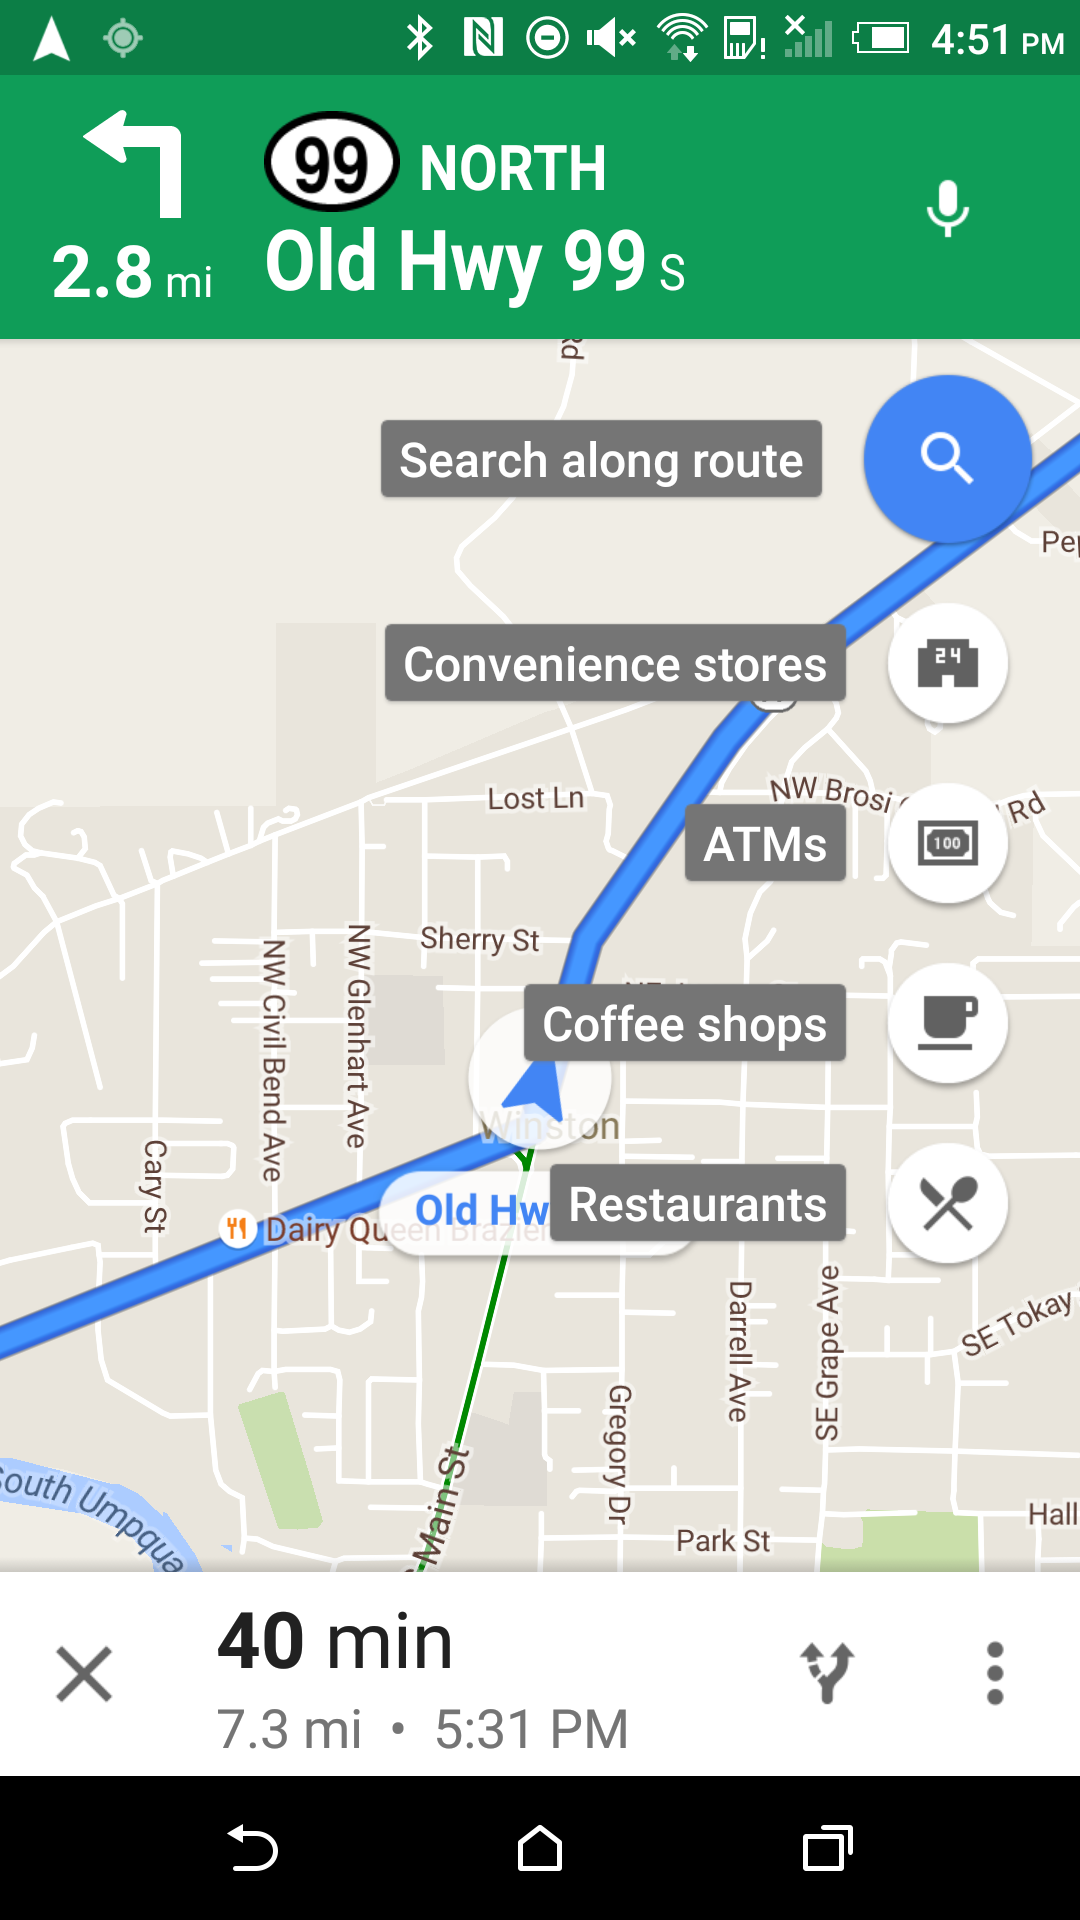 Google Maps v9.26.1 Adds Search Along Route For Walking And ... on mapquest walking maps, disney walking maps, google safety, google fitness,